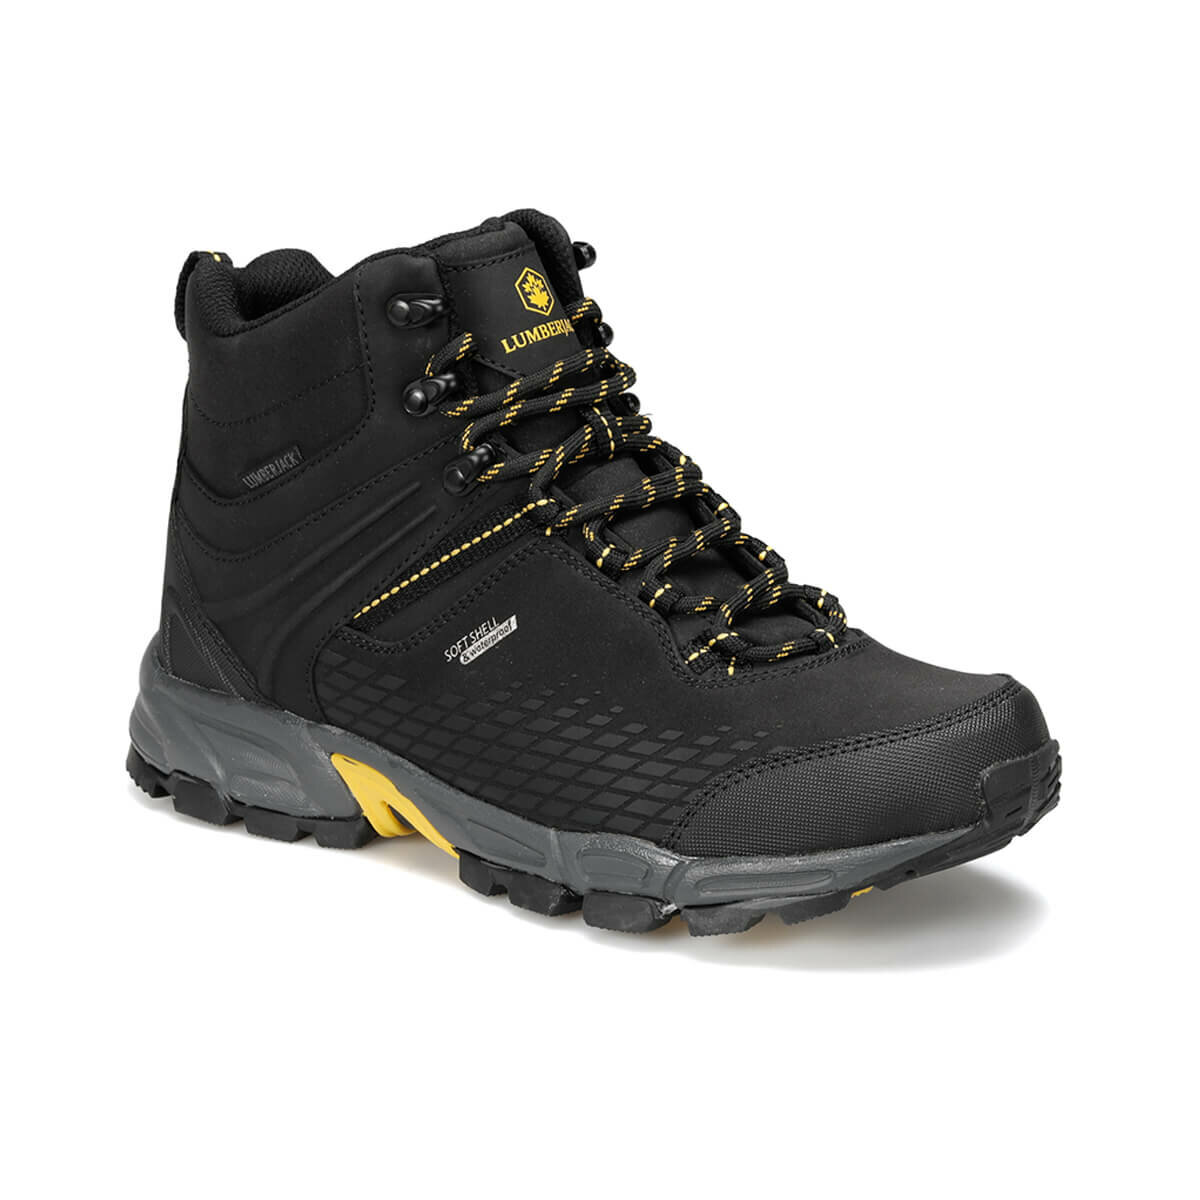 FLO FLAKE HI 9PR Black Male Outdoor Boots LUMBERJACK